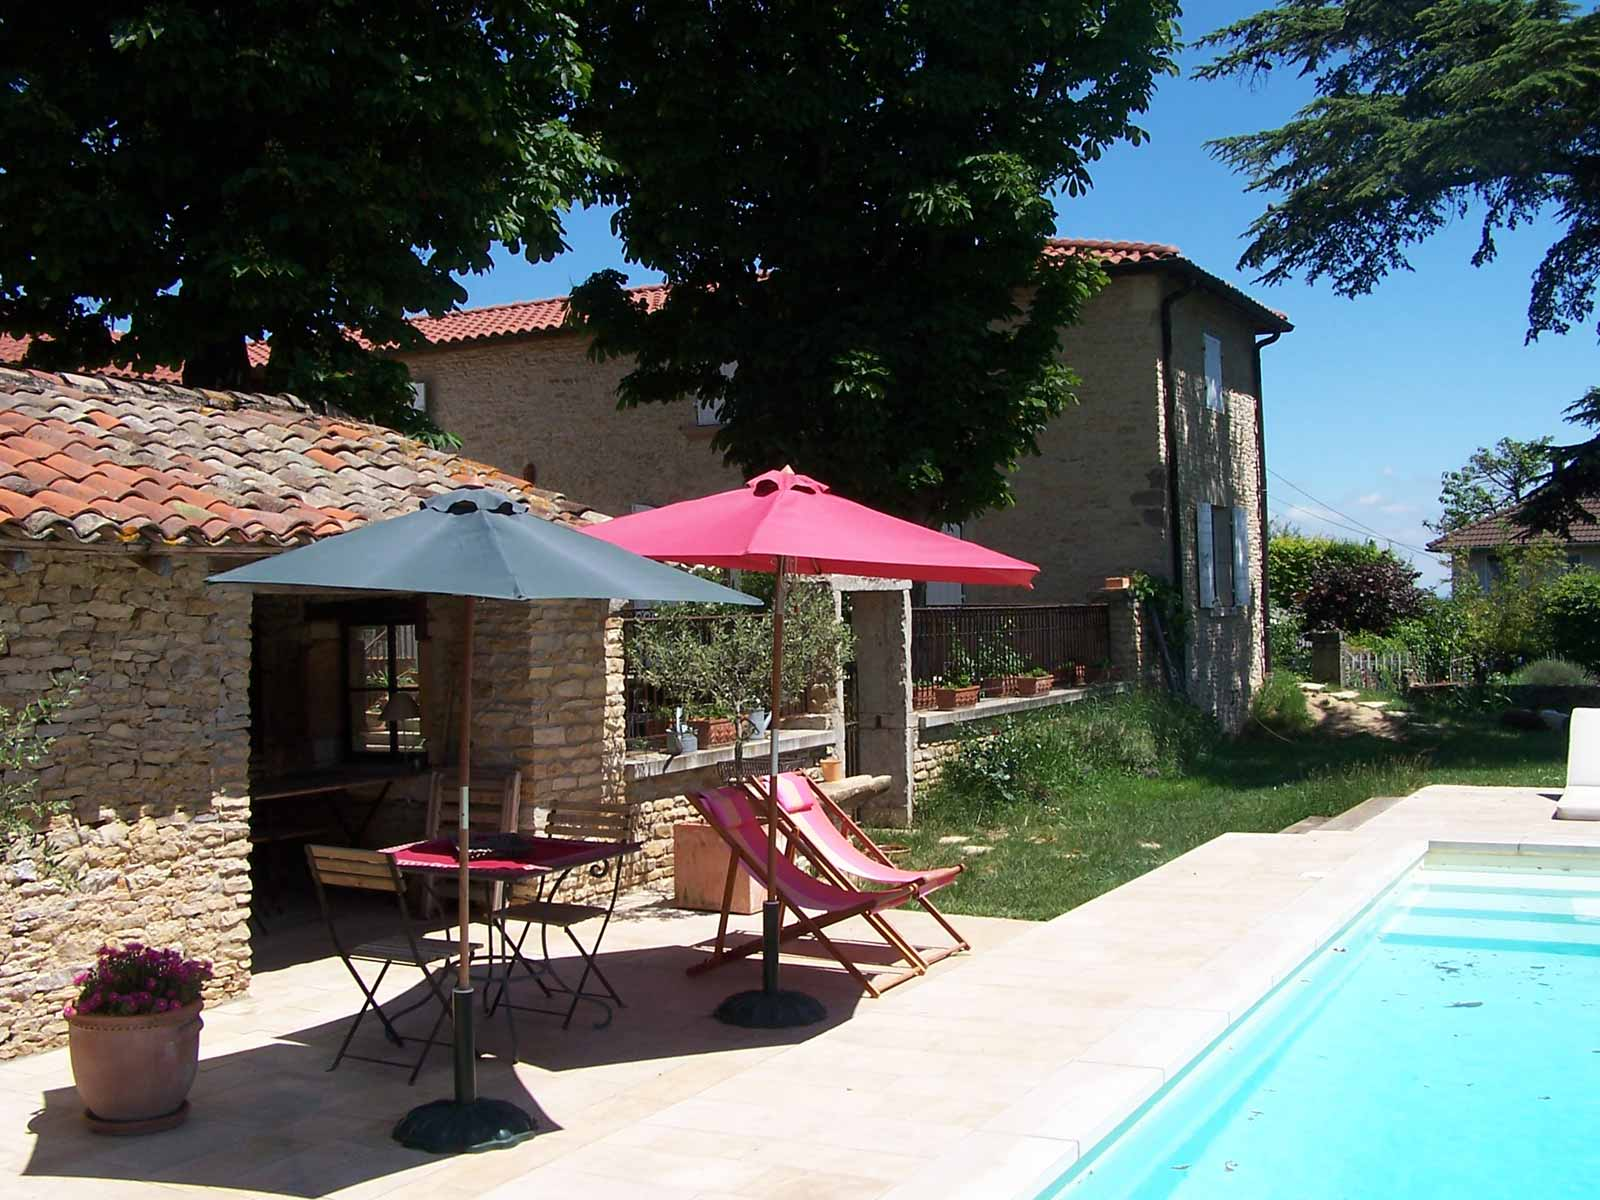 chambres-d-hote-charme-piscine-beaujolais